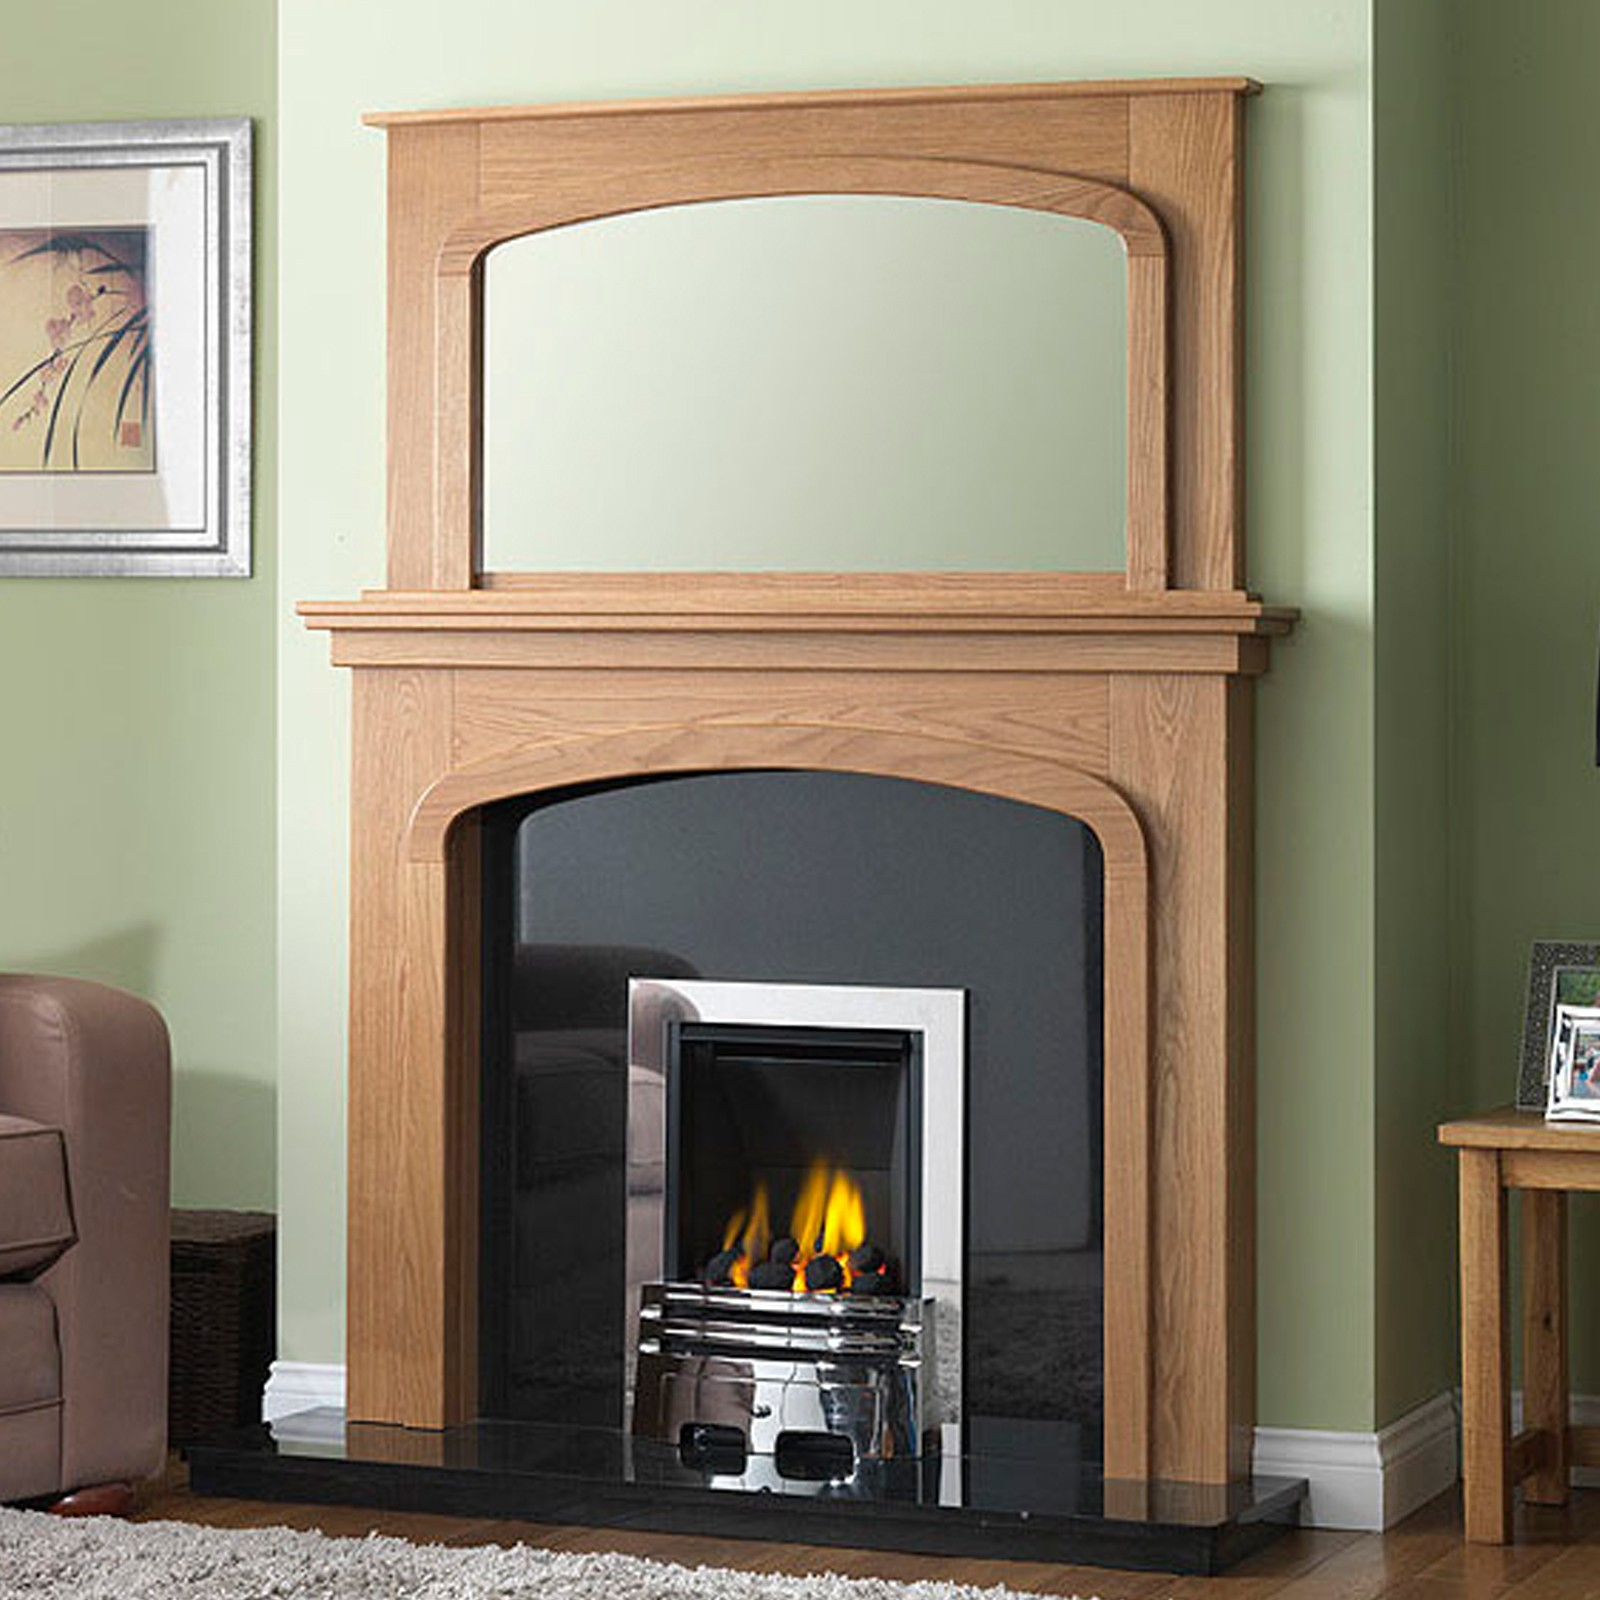 Great deals gb mantels pendle fireplace suite